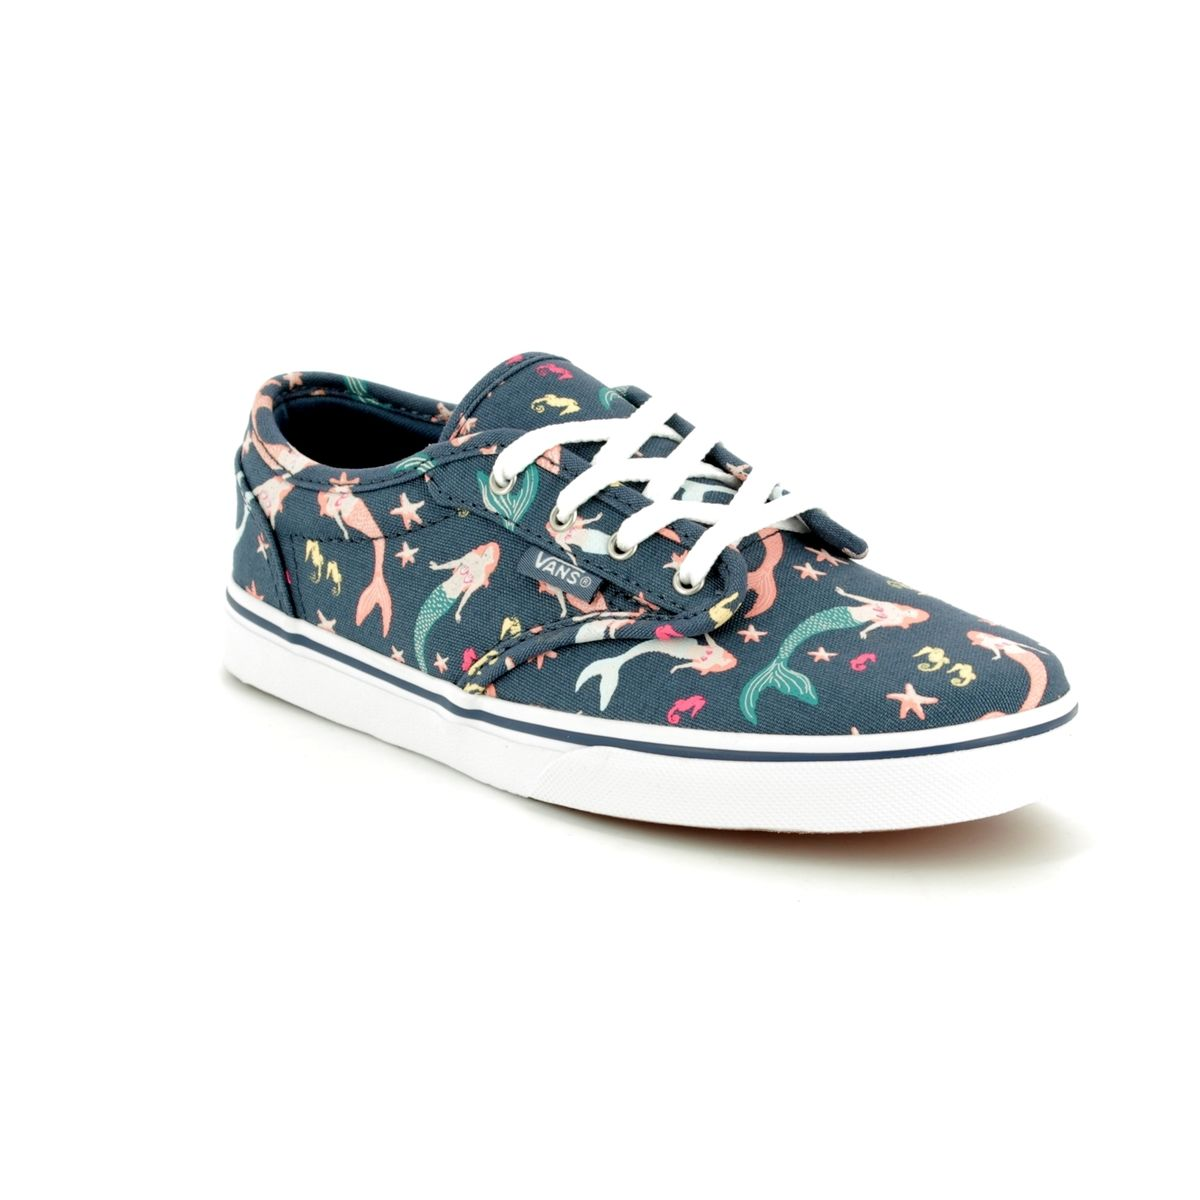 4af95c61829f Vans Trainers - Blue multi - VA38DUQ5J ATWOOD LOW YOUTH